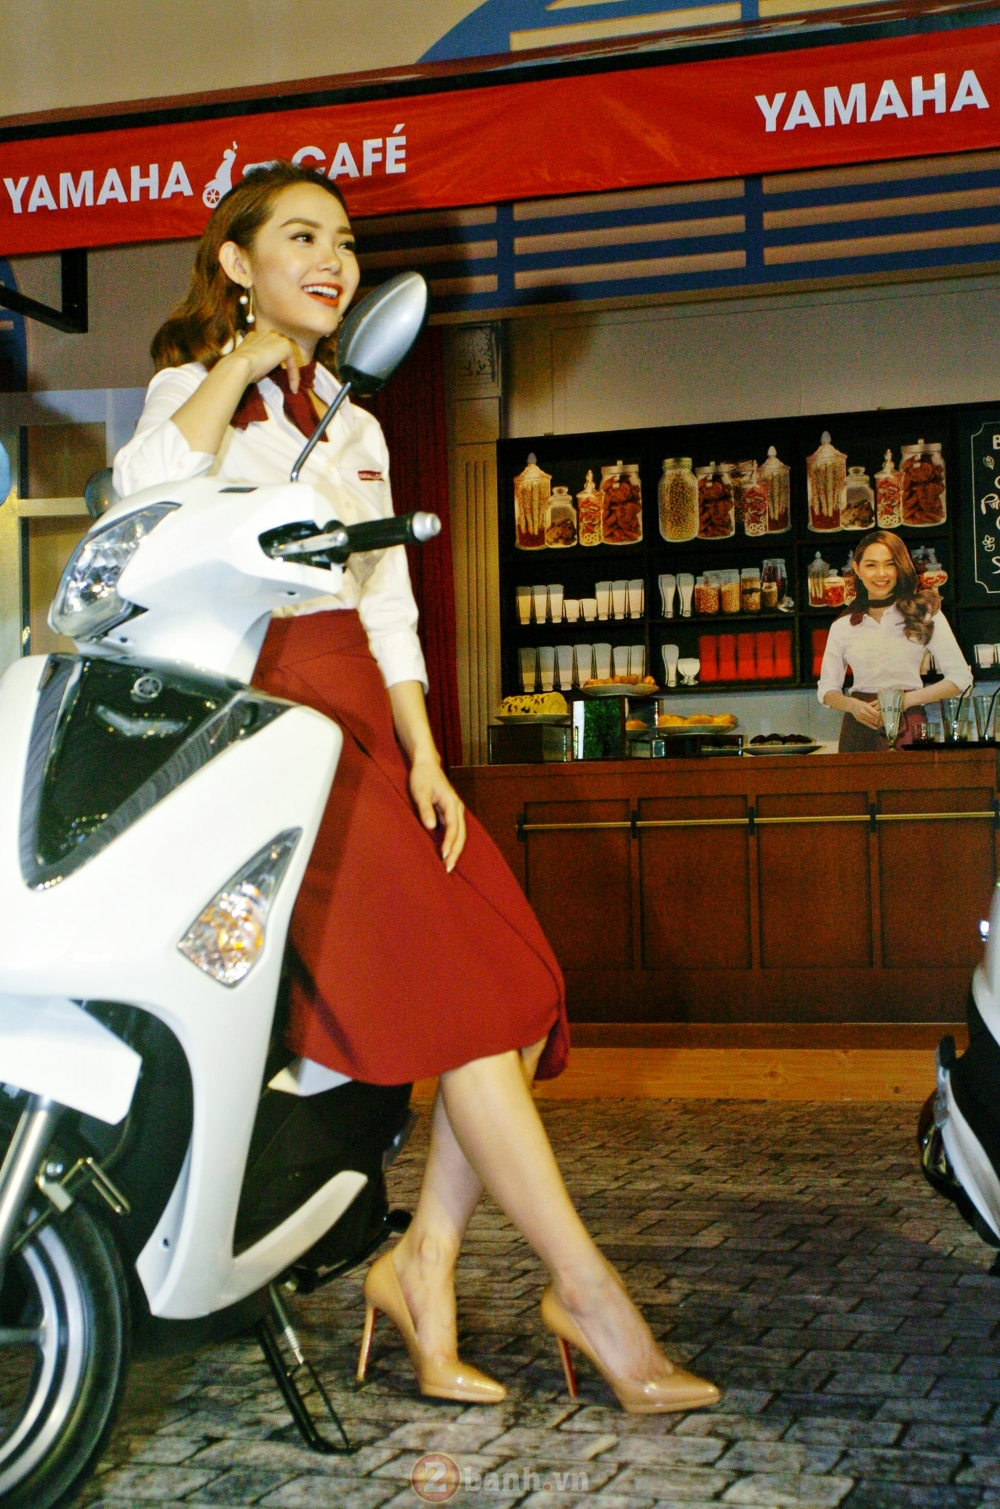 Boi canh the hien ve dep For Beautiful Ride tai Yamaha Cafe - 4